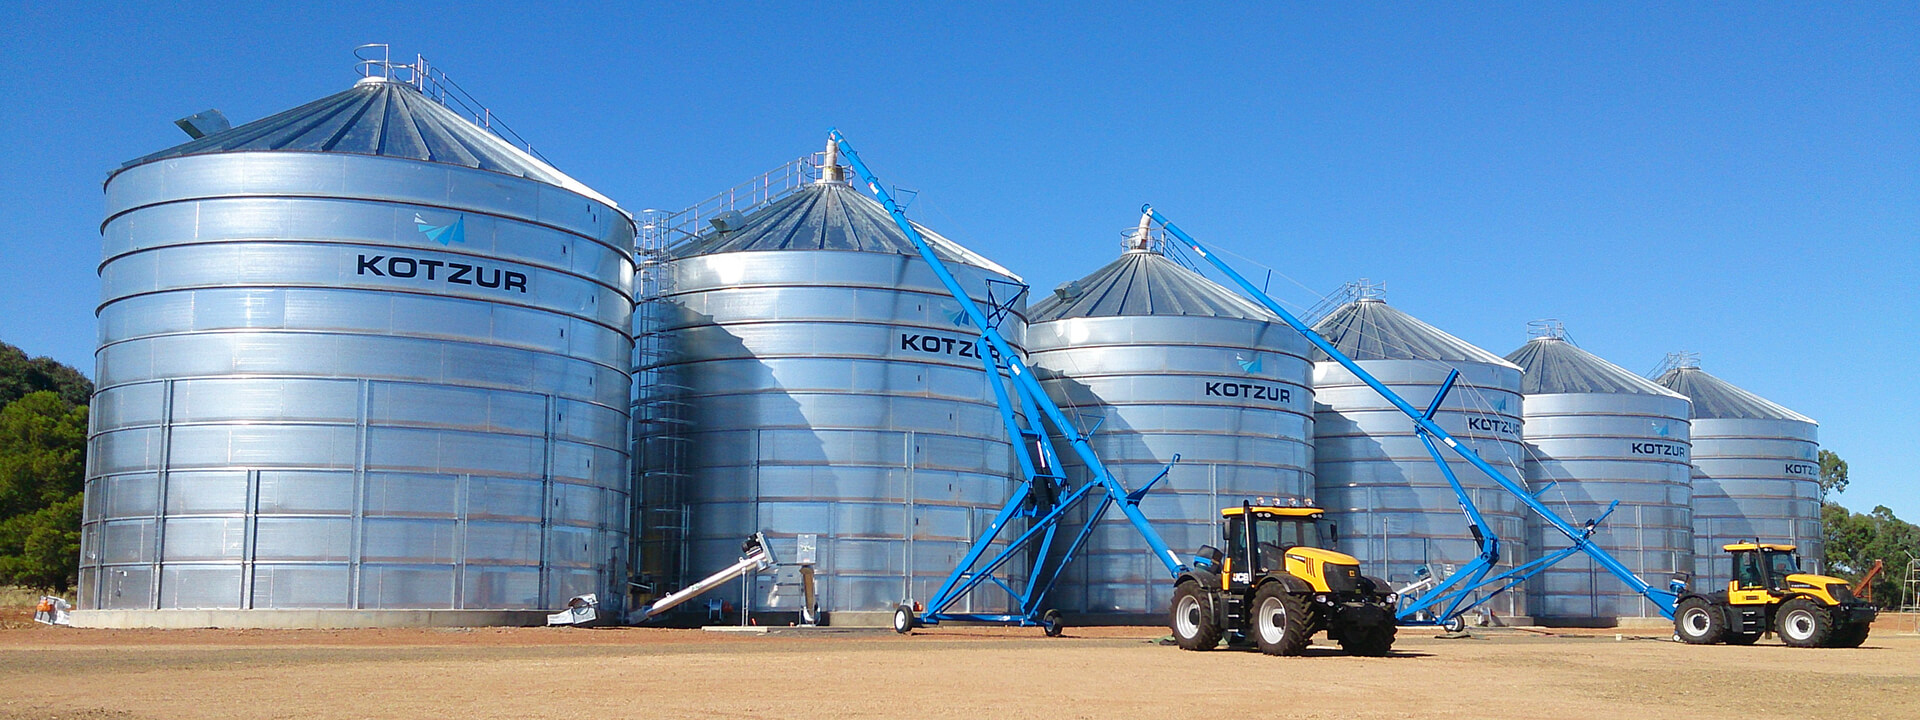 On-Ground Silos